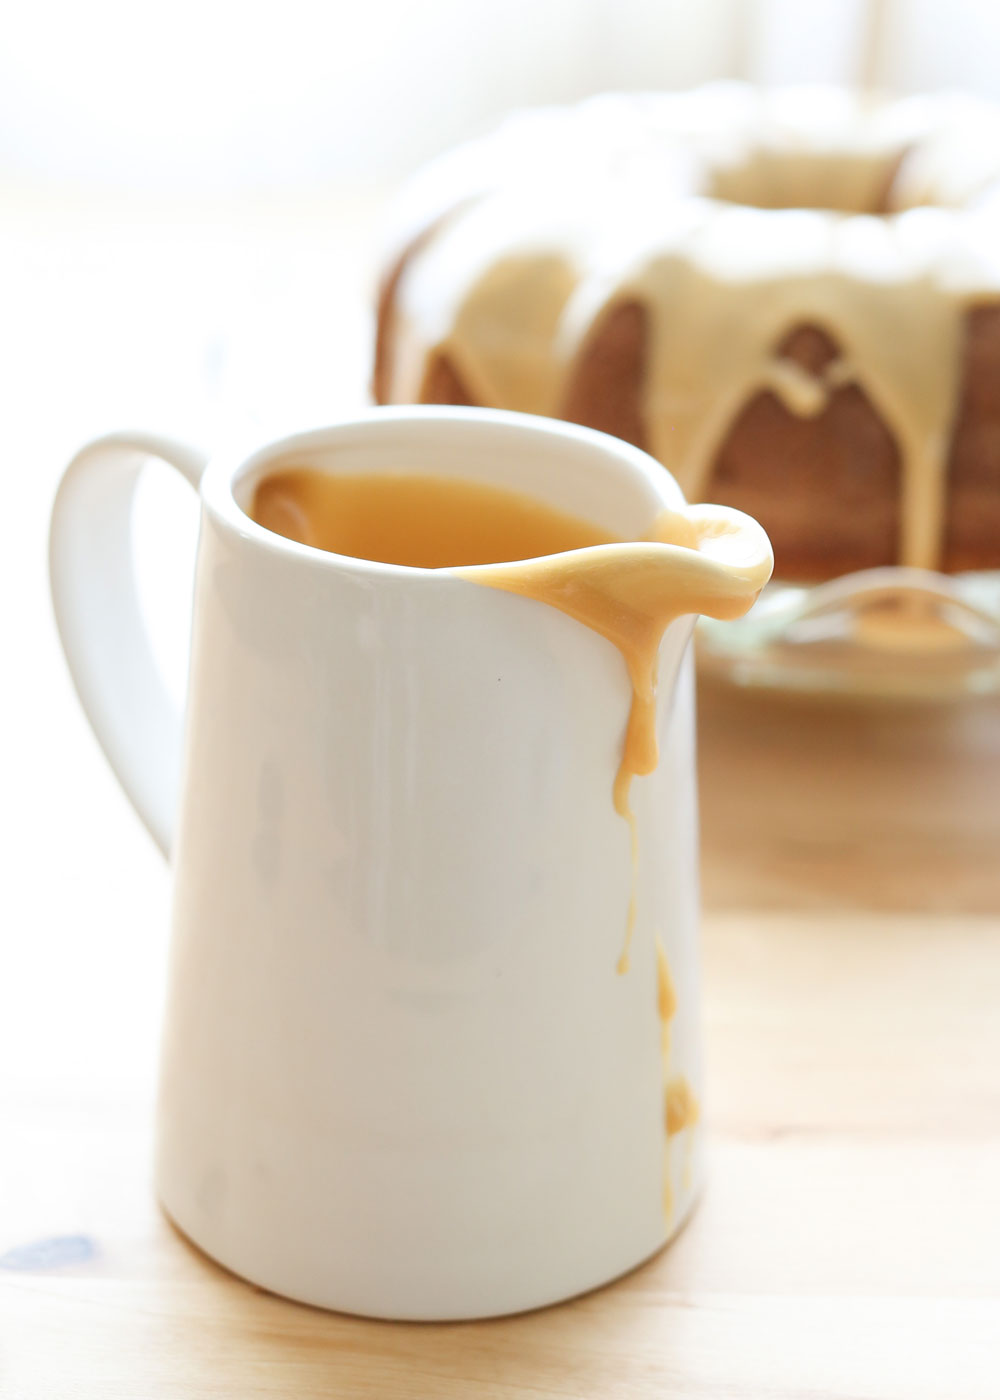 Creamy, rich, thick, Caramel Glaze Topping Recipe perfect for spooning over your favorite desserts!